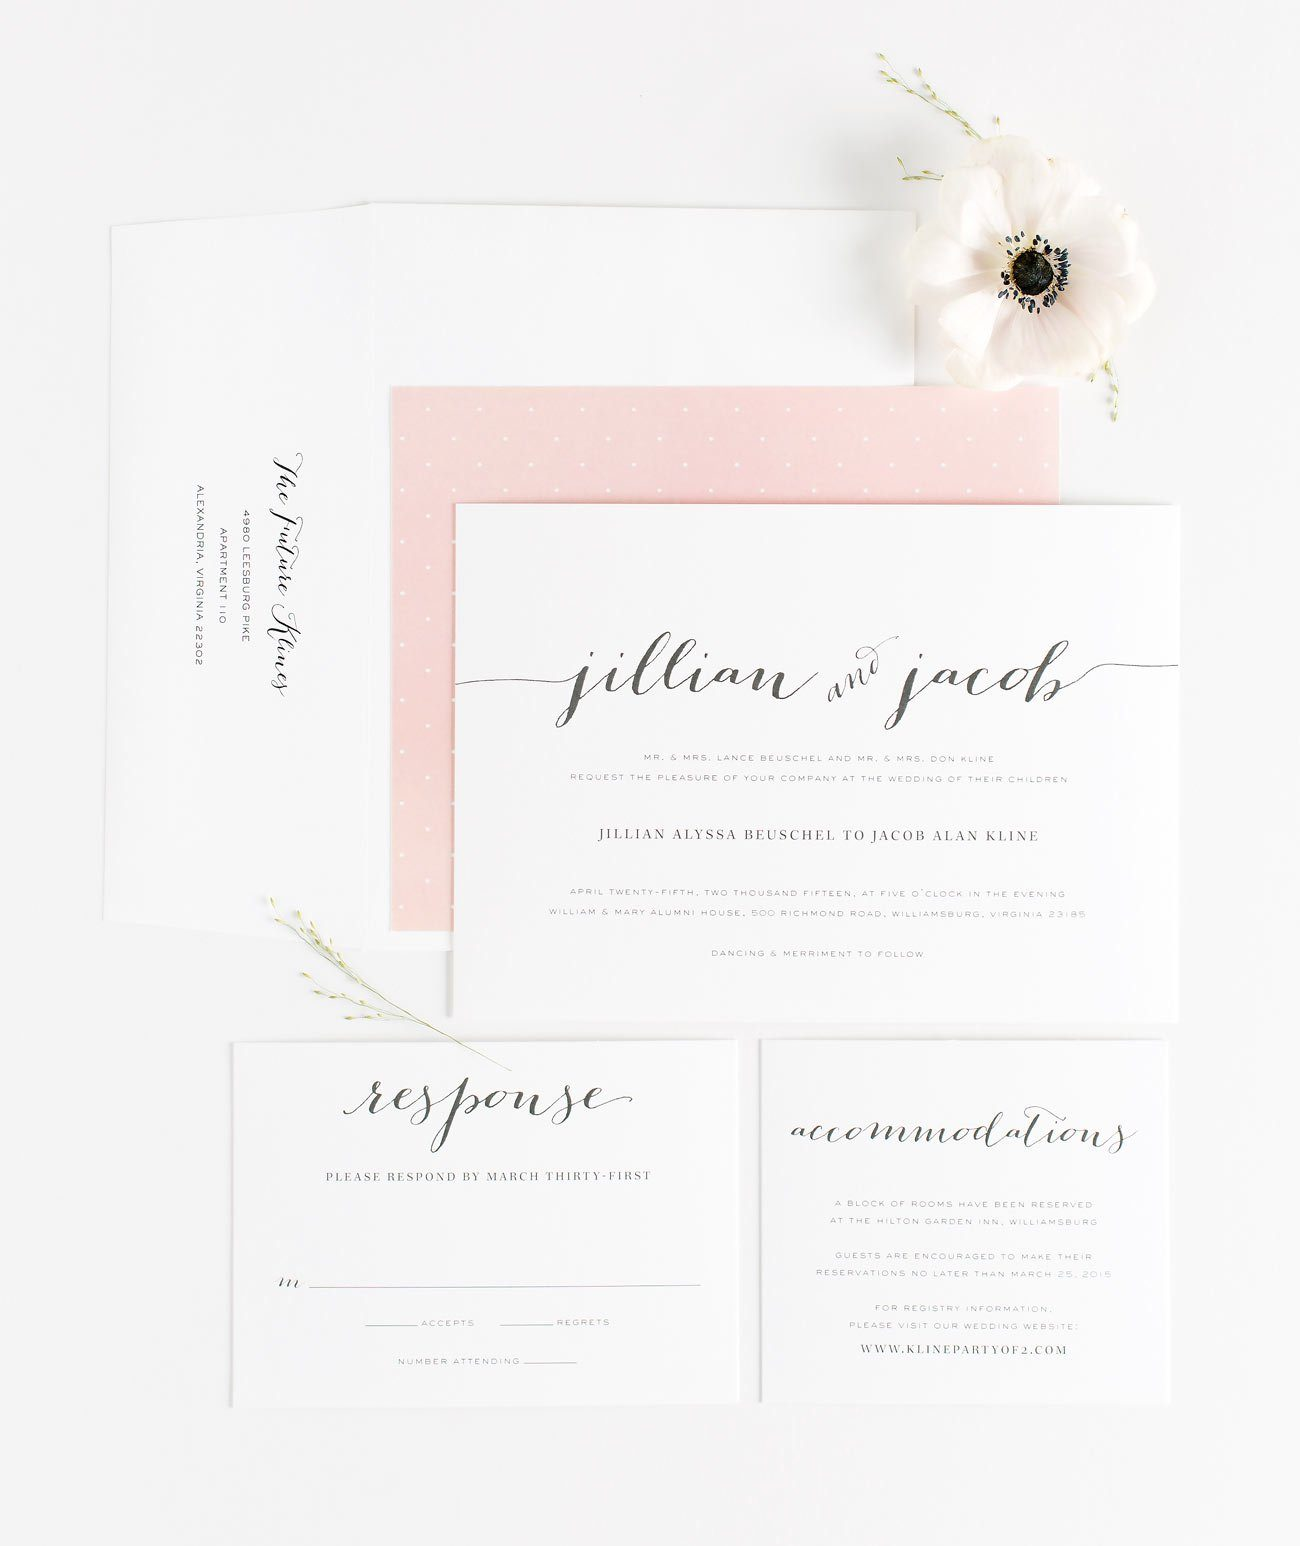 Flowing Script Wedding Invitations in Blush